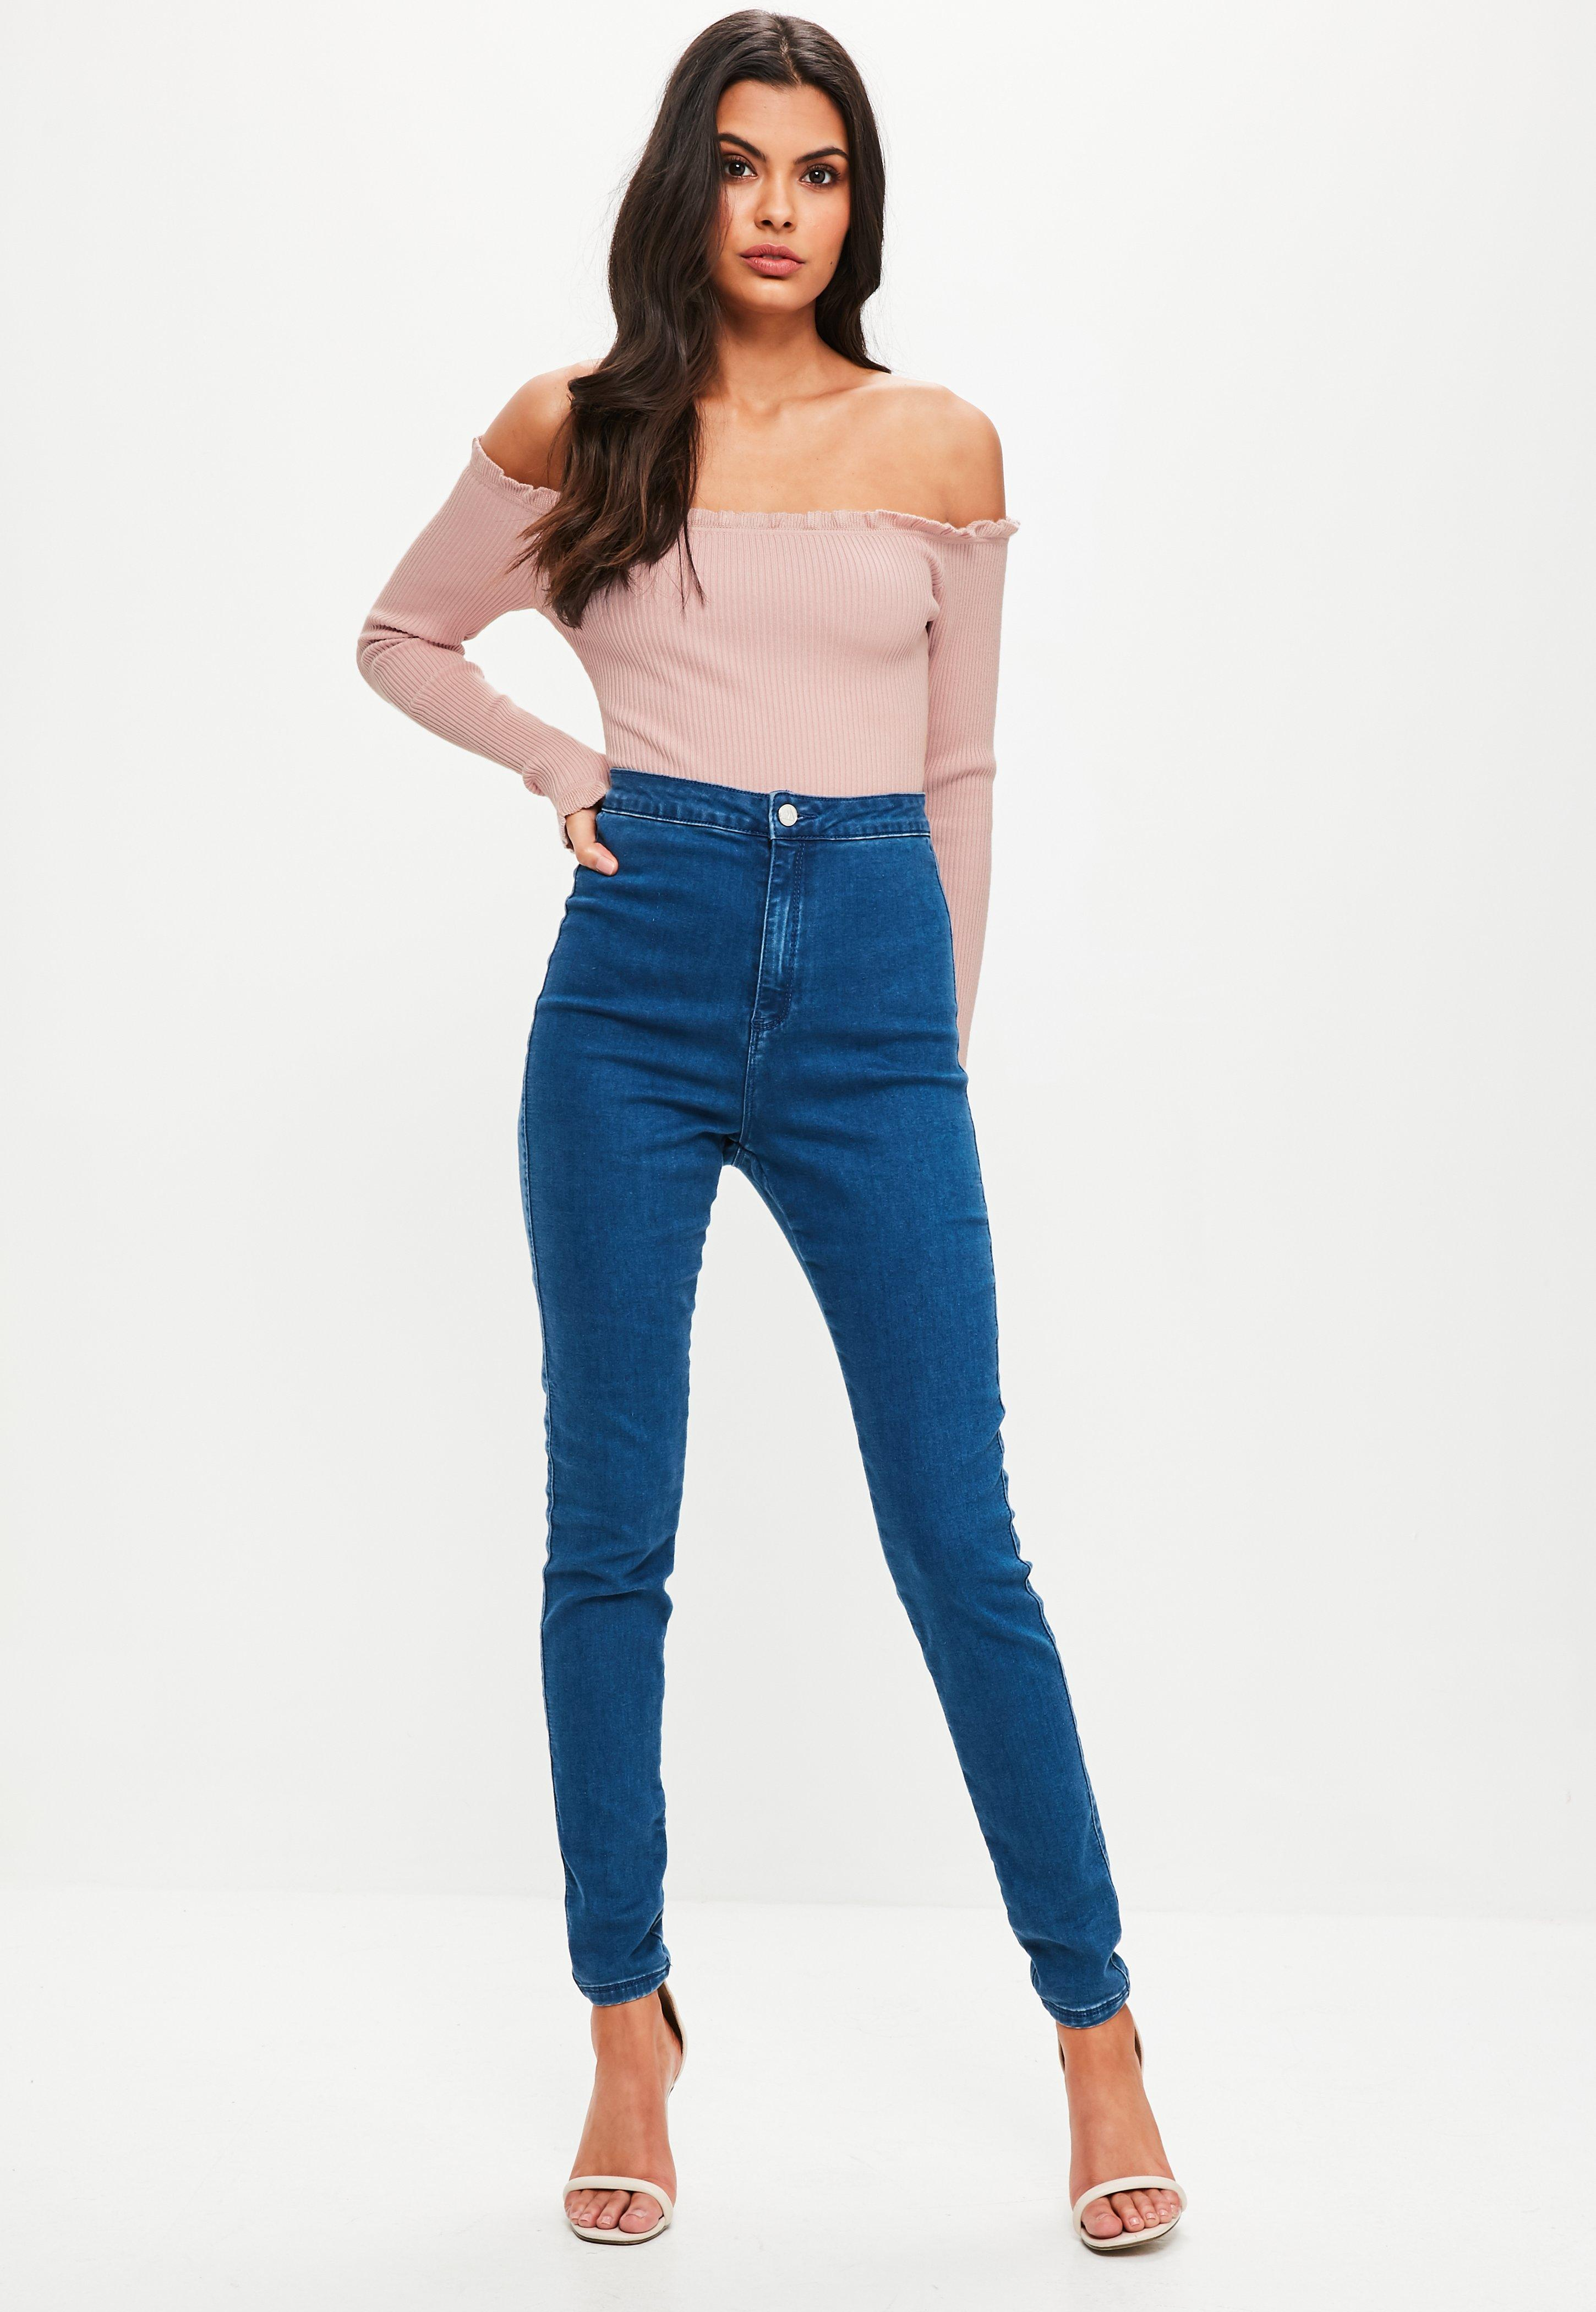 fdefe8ec0a Lyst - Missguided Pink Frill Bardot Knitted Bodysuit in Pink